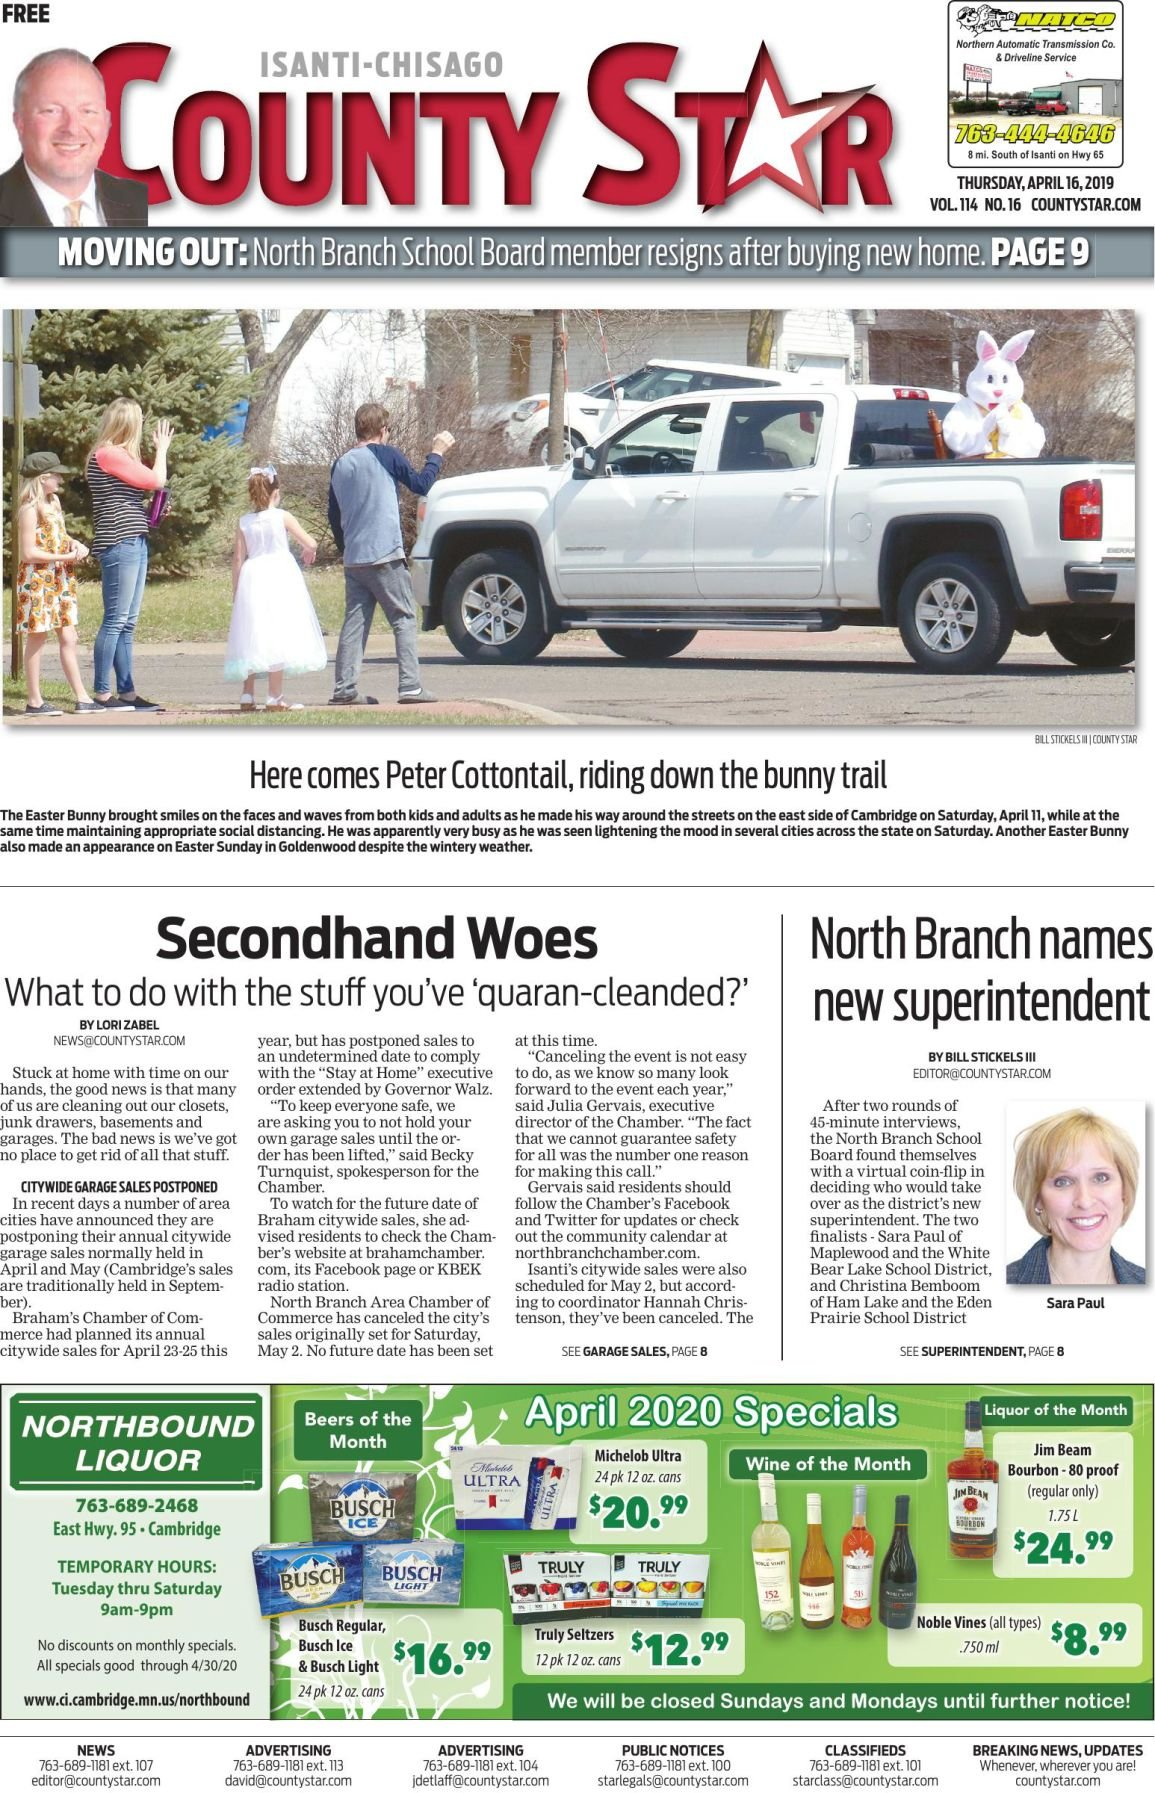 Isanti-Chisago County Star April 16, 2020 e-edition